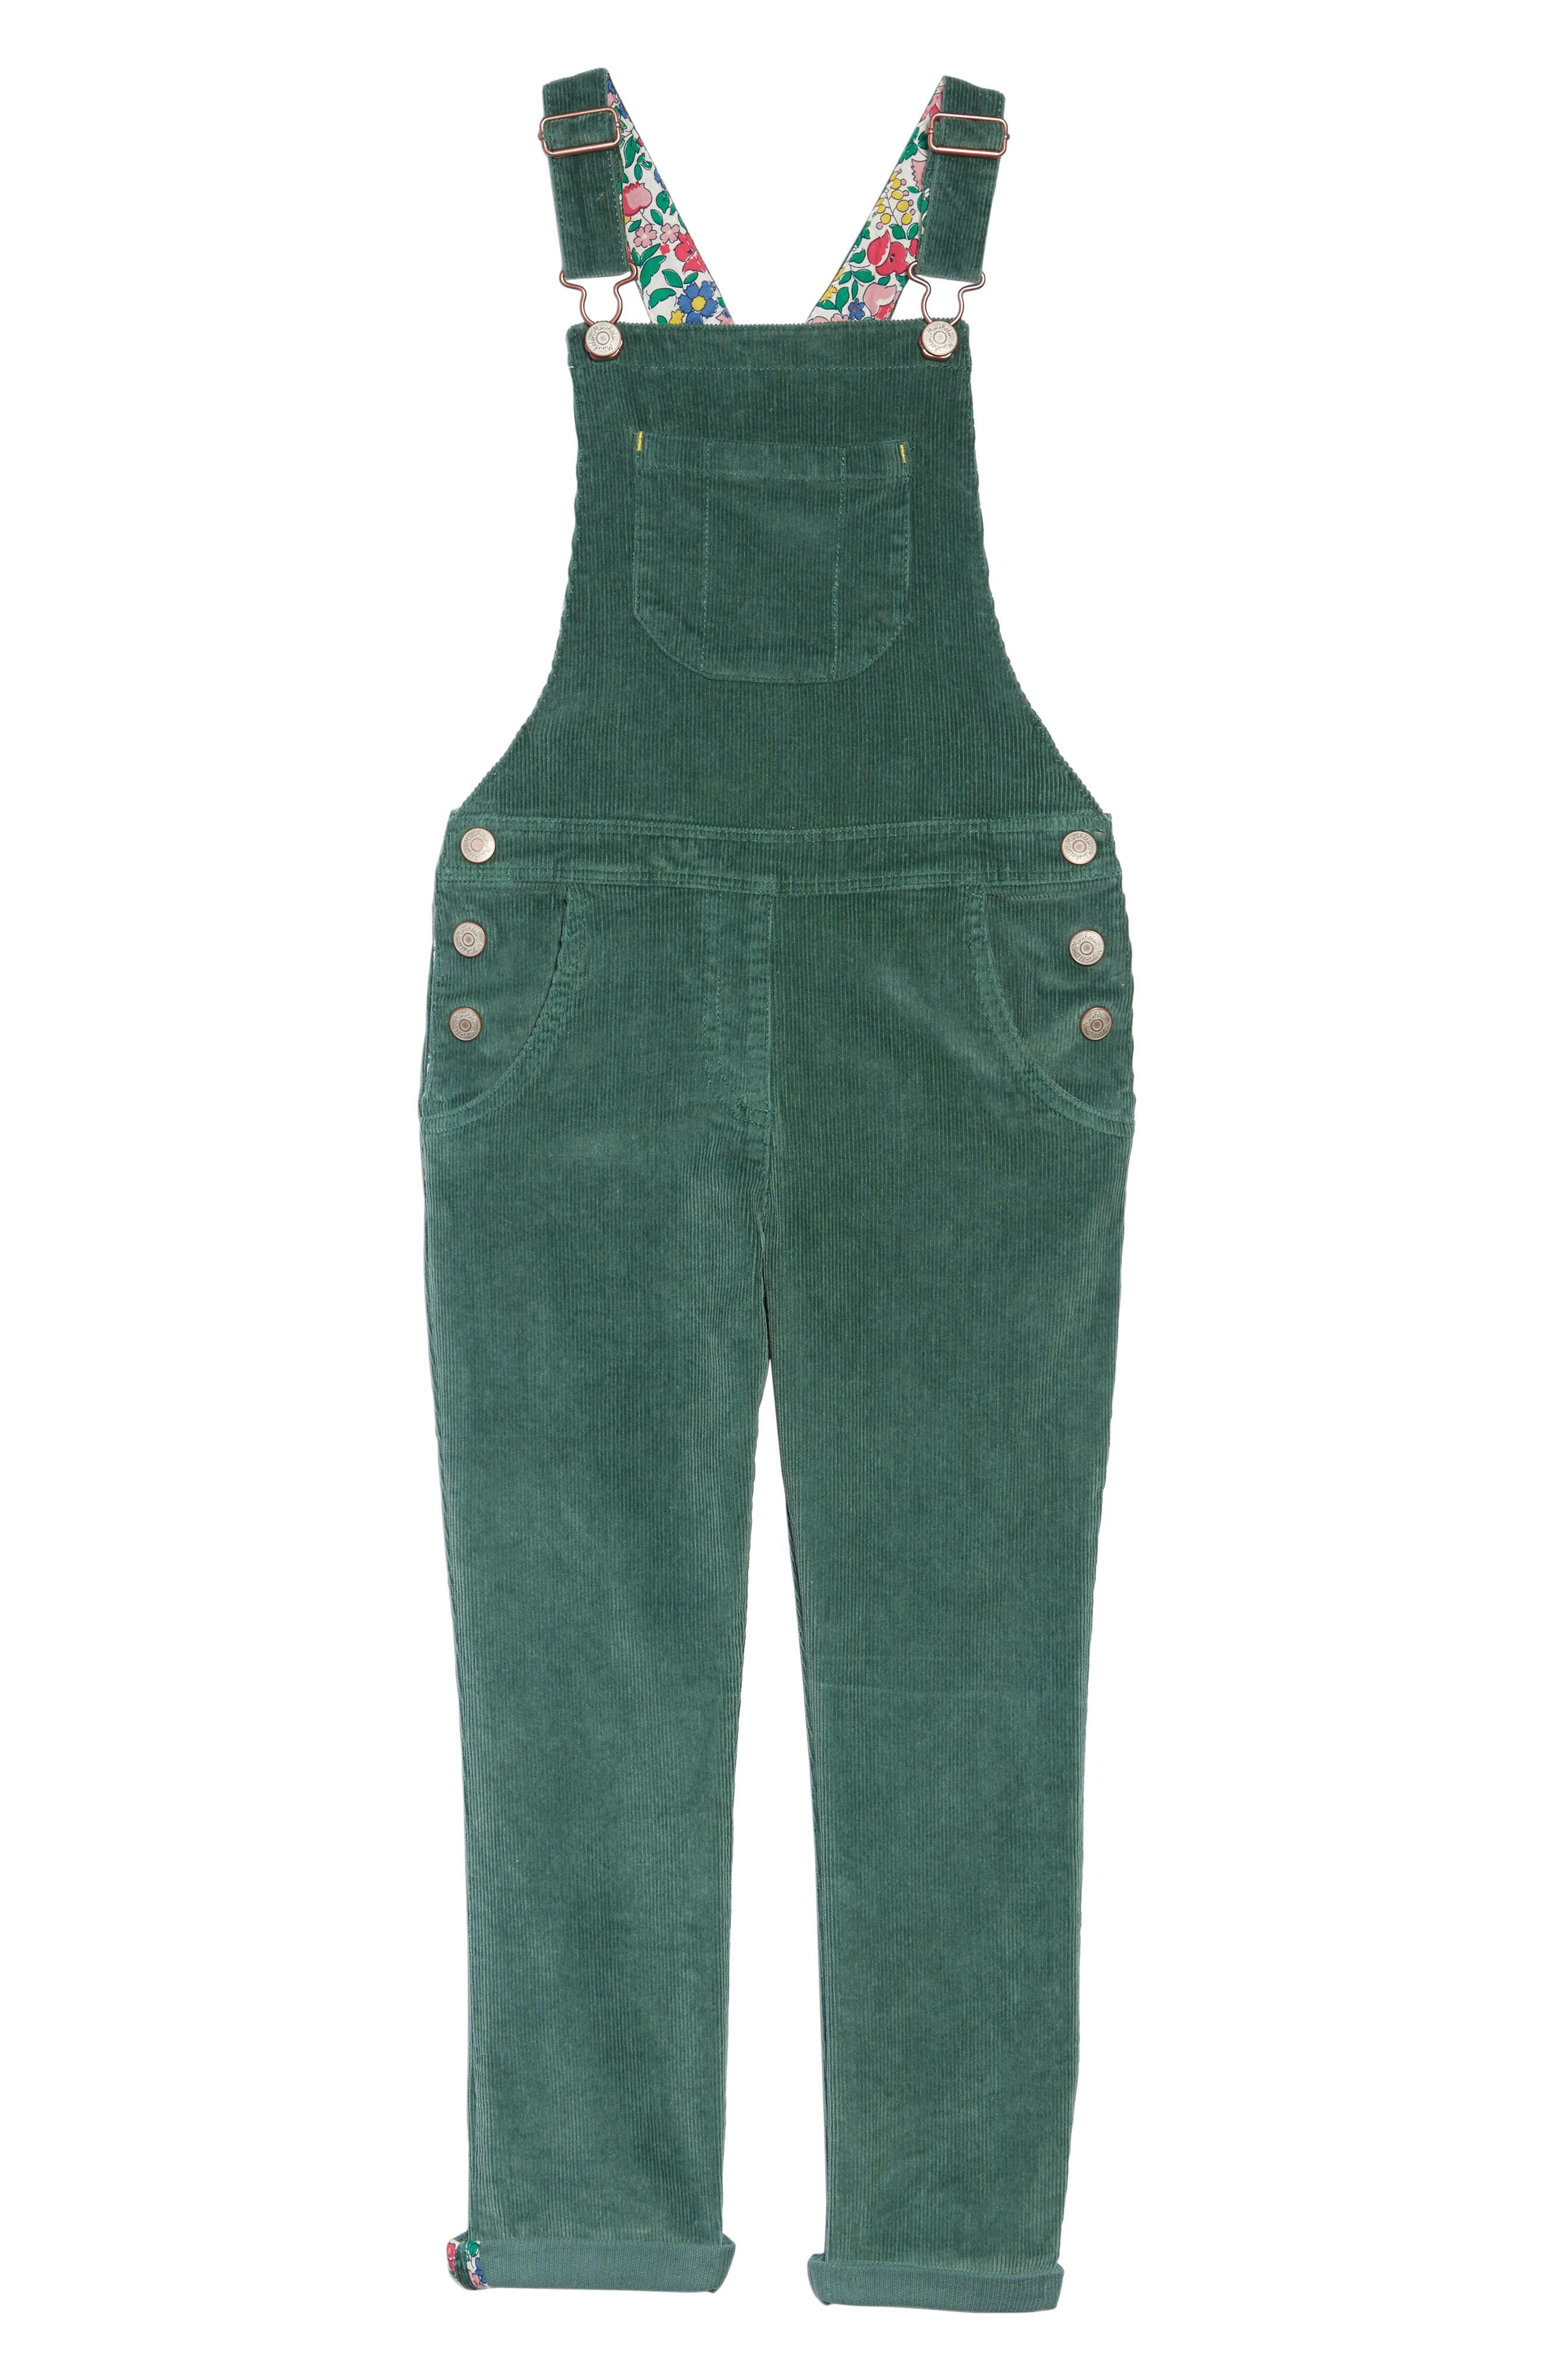 Embroidered Dungaree Overalls,                         Main,                         color, WILLOW GREEN